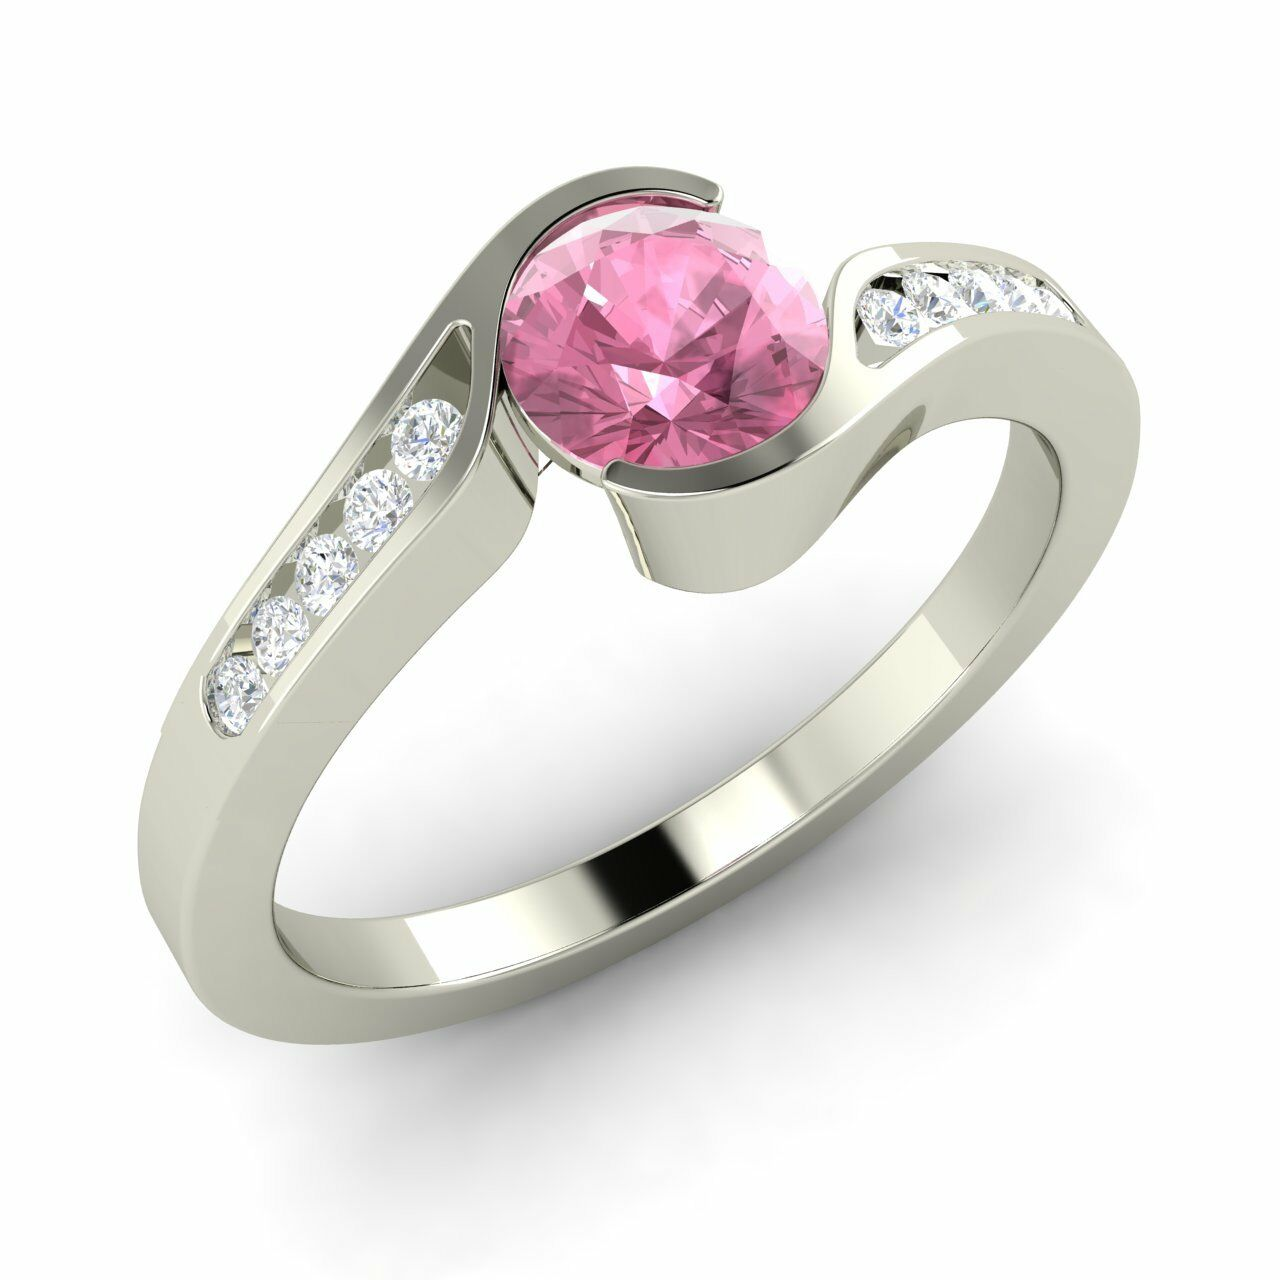 Natural Diamond Round Pink Tourmaline Engagement Ring 14K White gold, Certified